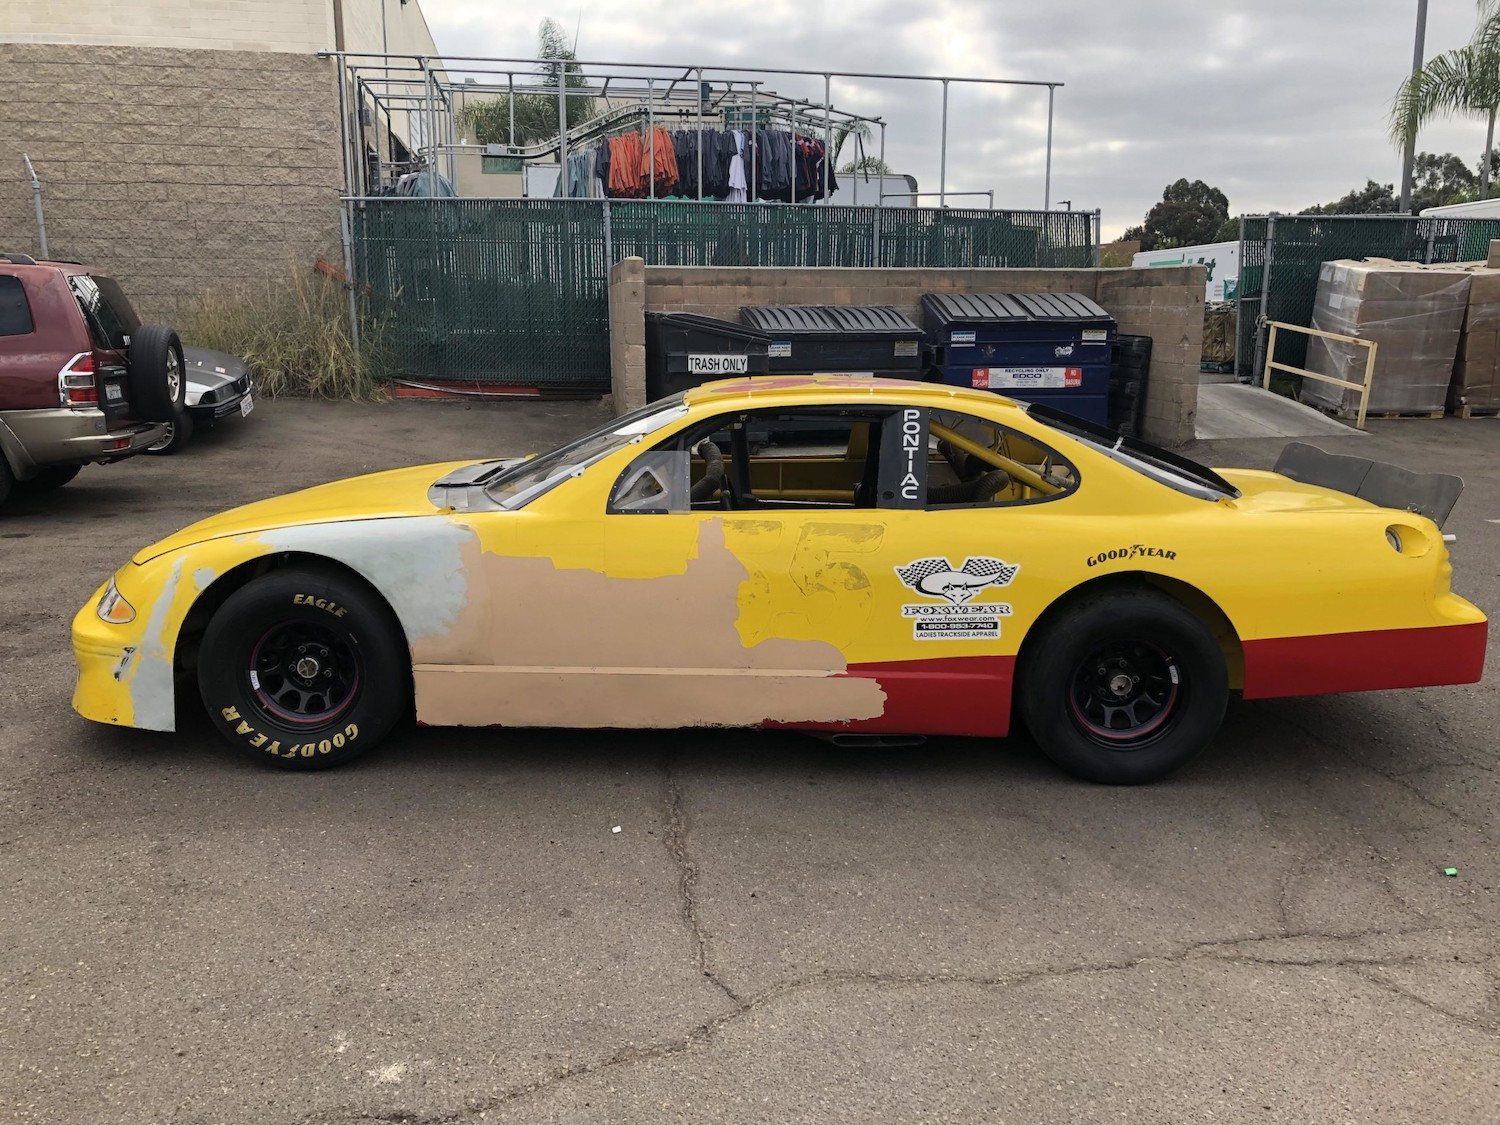 1996 Pontiac Grand Prix NASCAR Race Car